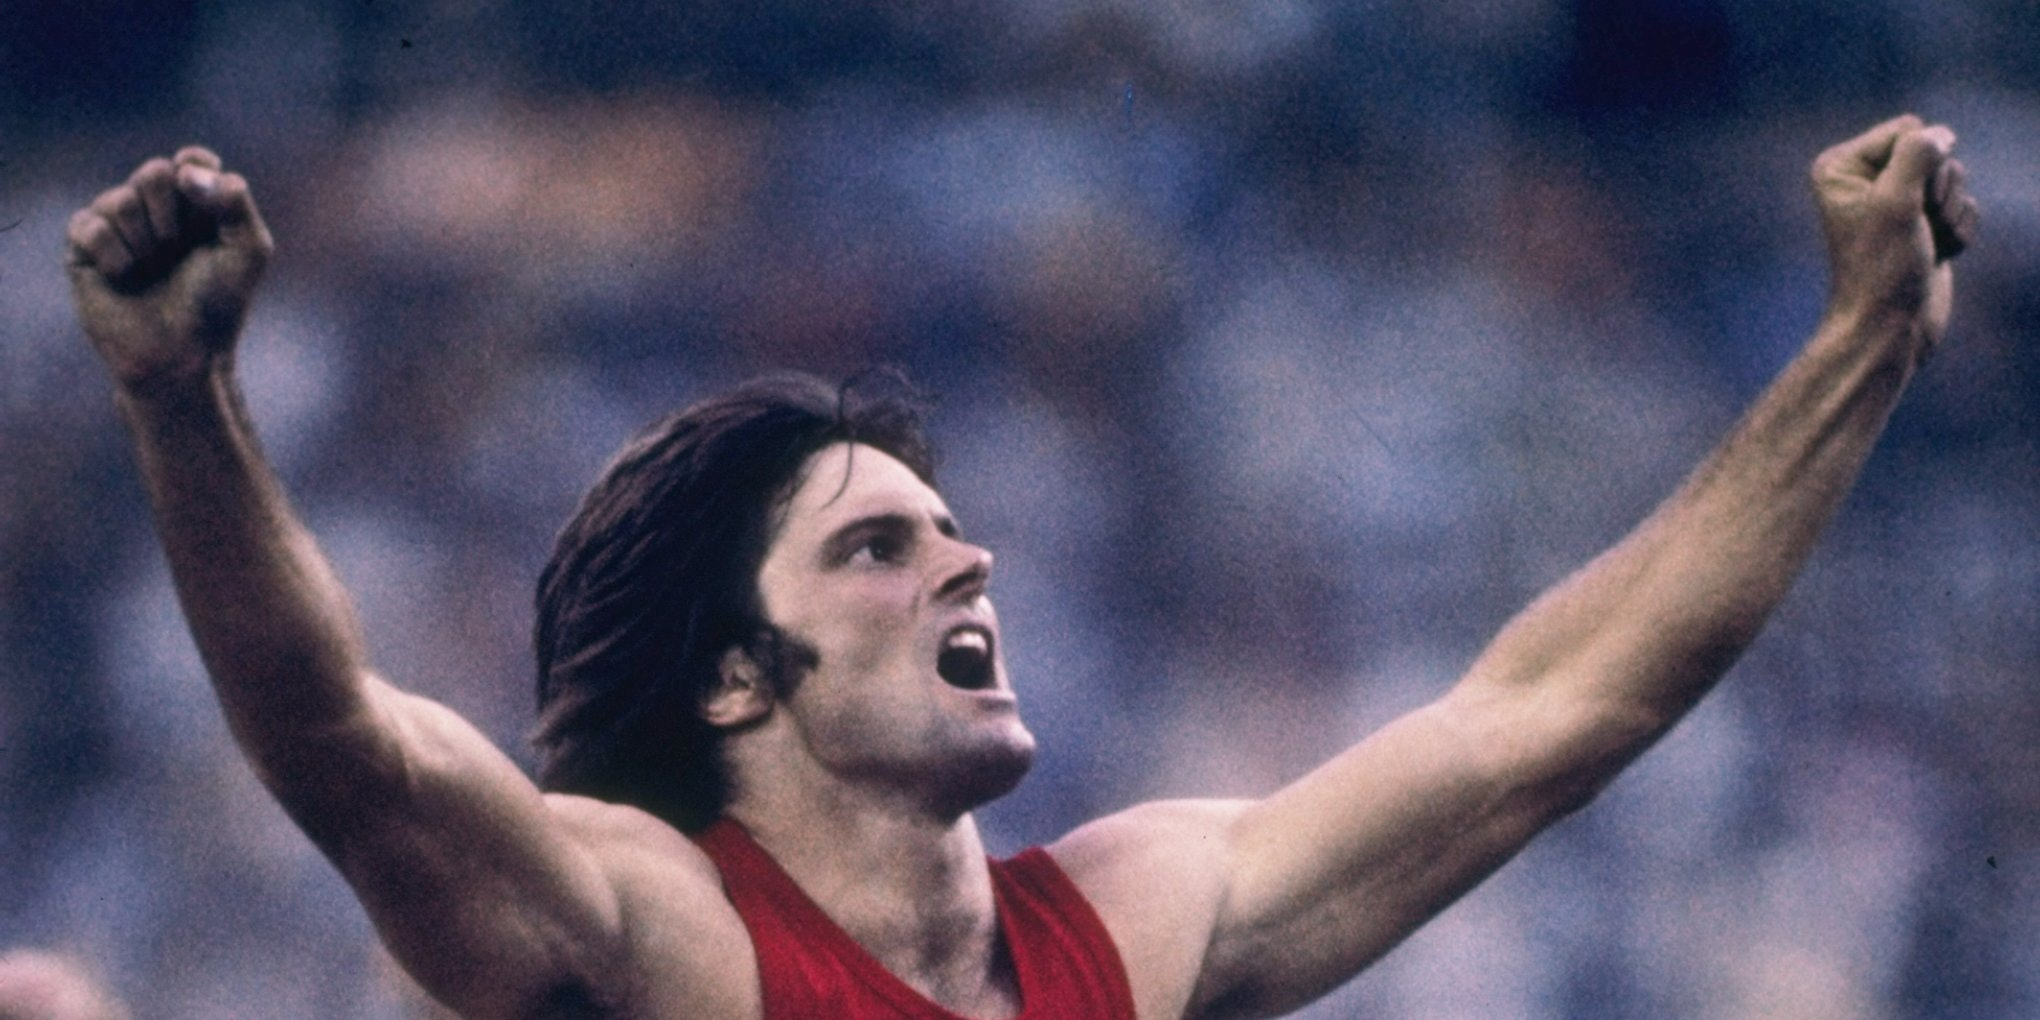 In 1976, Caitlyn Jenner, previously known as Bruce, set the Olympic record for the decathlon. In 2015 she publicly announced she was a transgender woman.